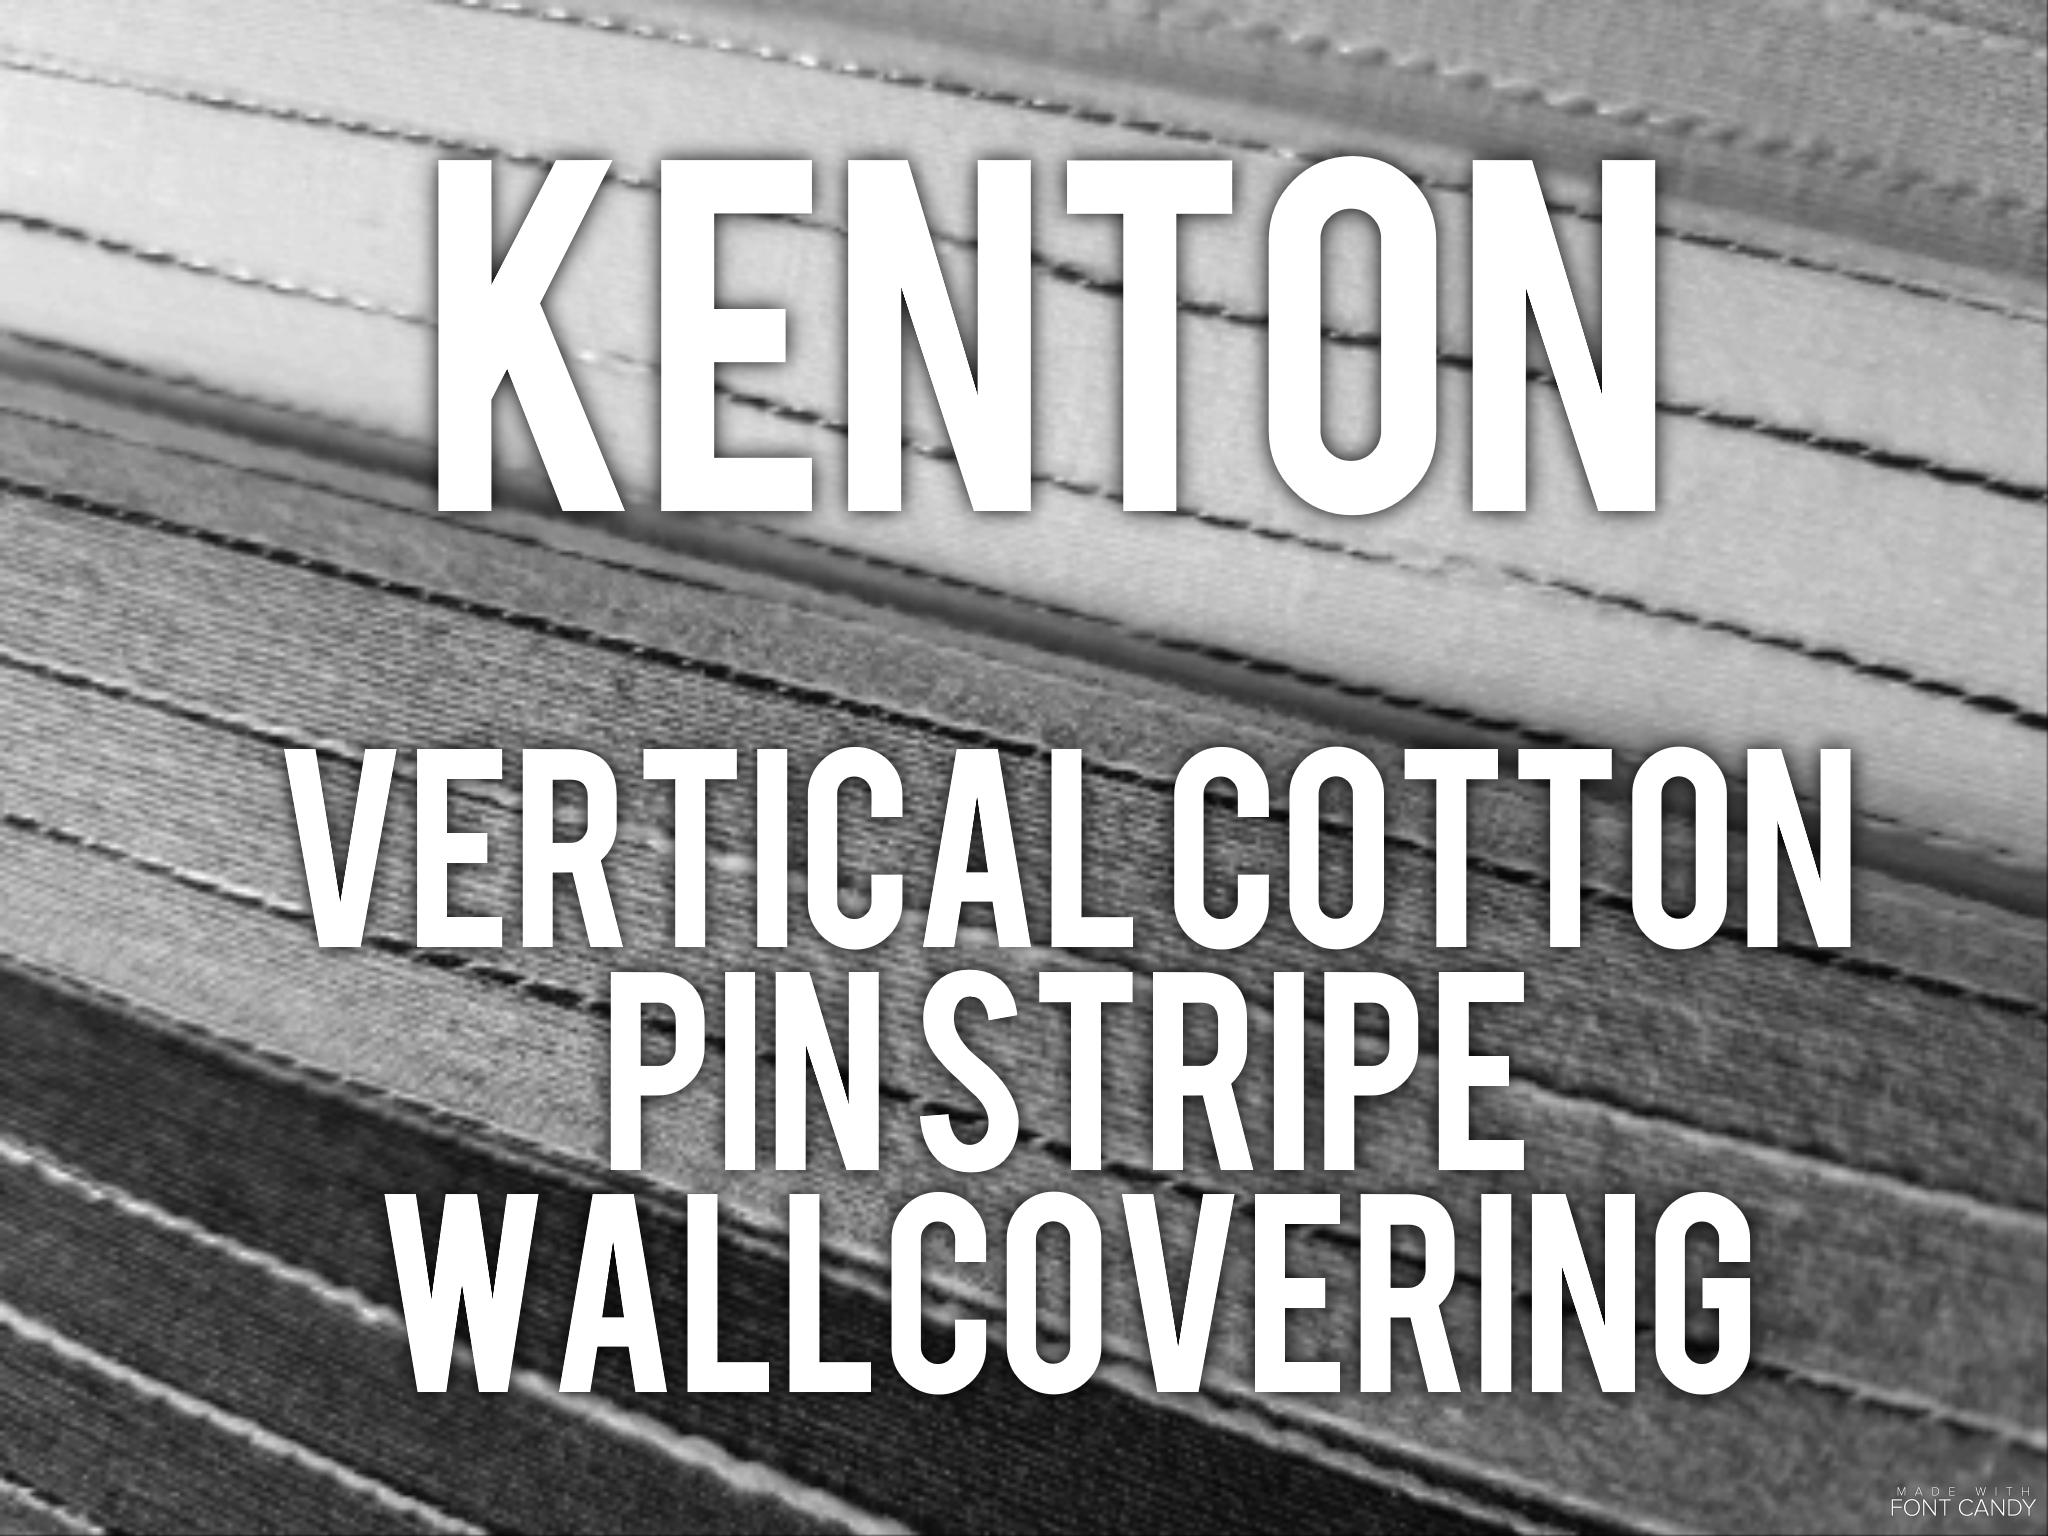 Kenton - Vertical cotton pinstripe wallcovering